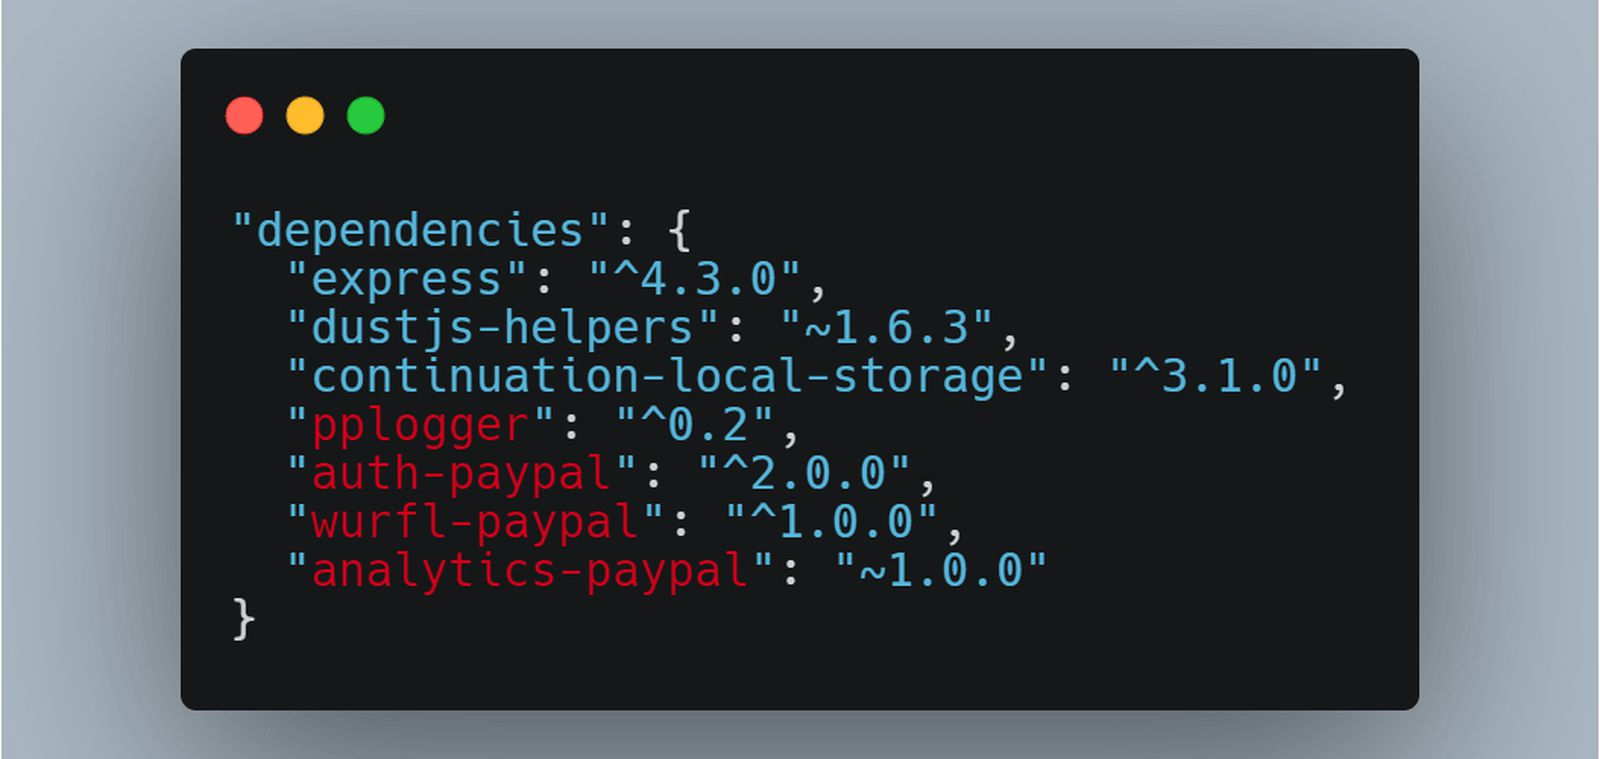 Researcher Breaches Systems of Over 35 Companies, Including Apple, Microsoft, and PayPal